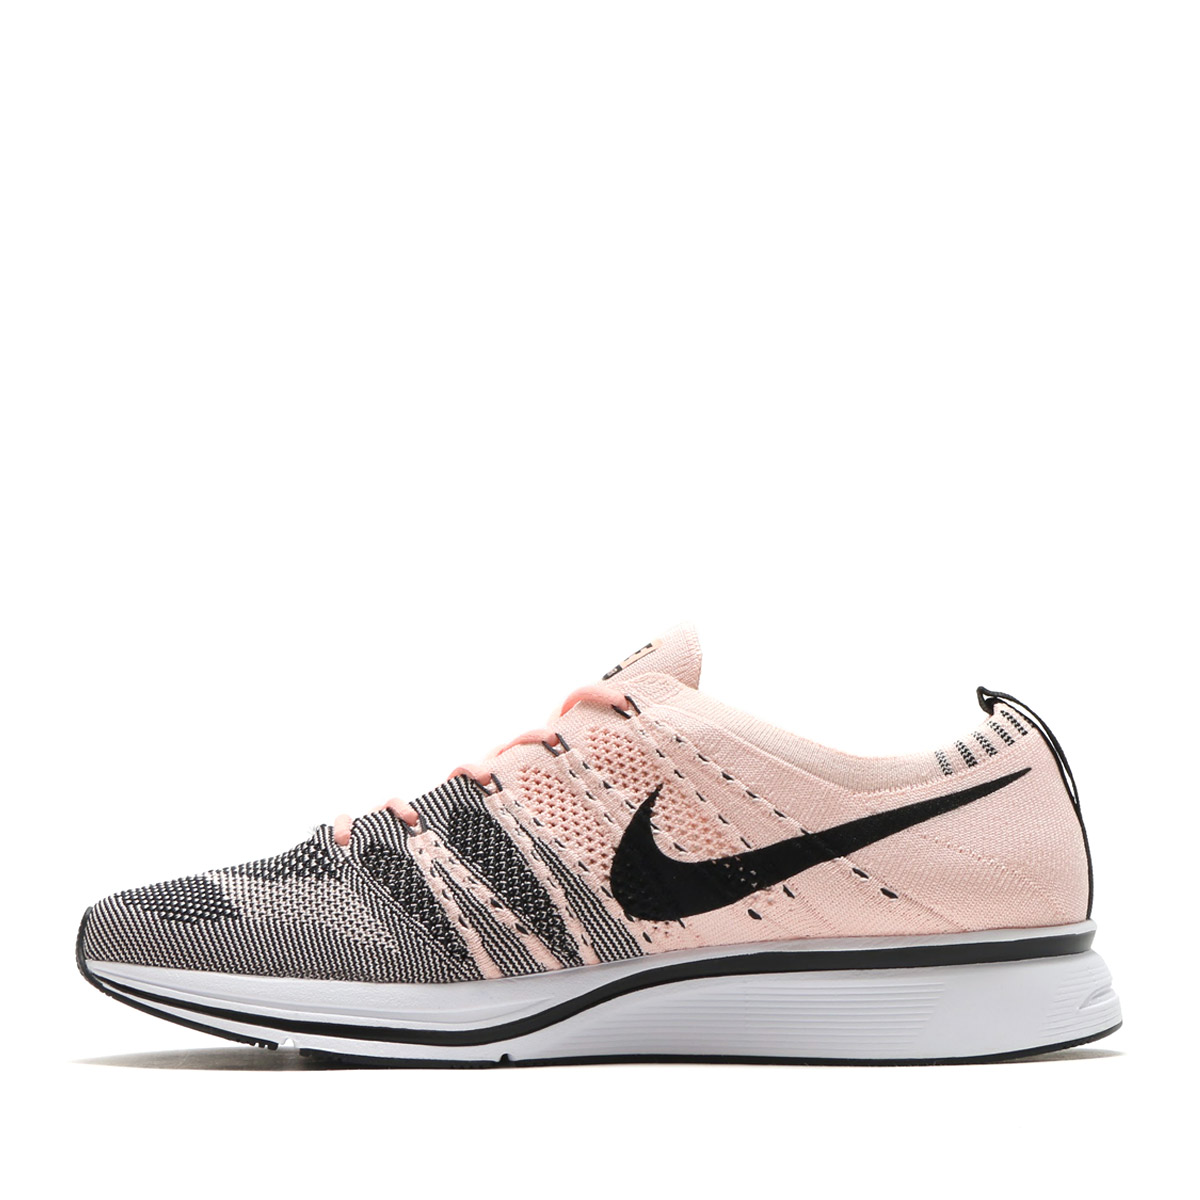 f1e66a03932b NIKE FLYKNIT TRAINER (Nike fried food knit trainer) (SUNSET TINT BLACK-WHITE)  17FA-S